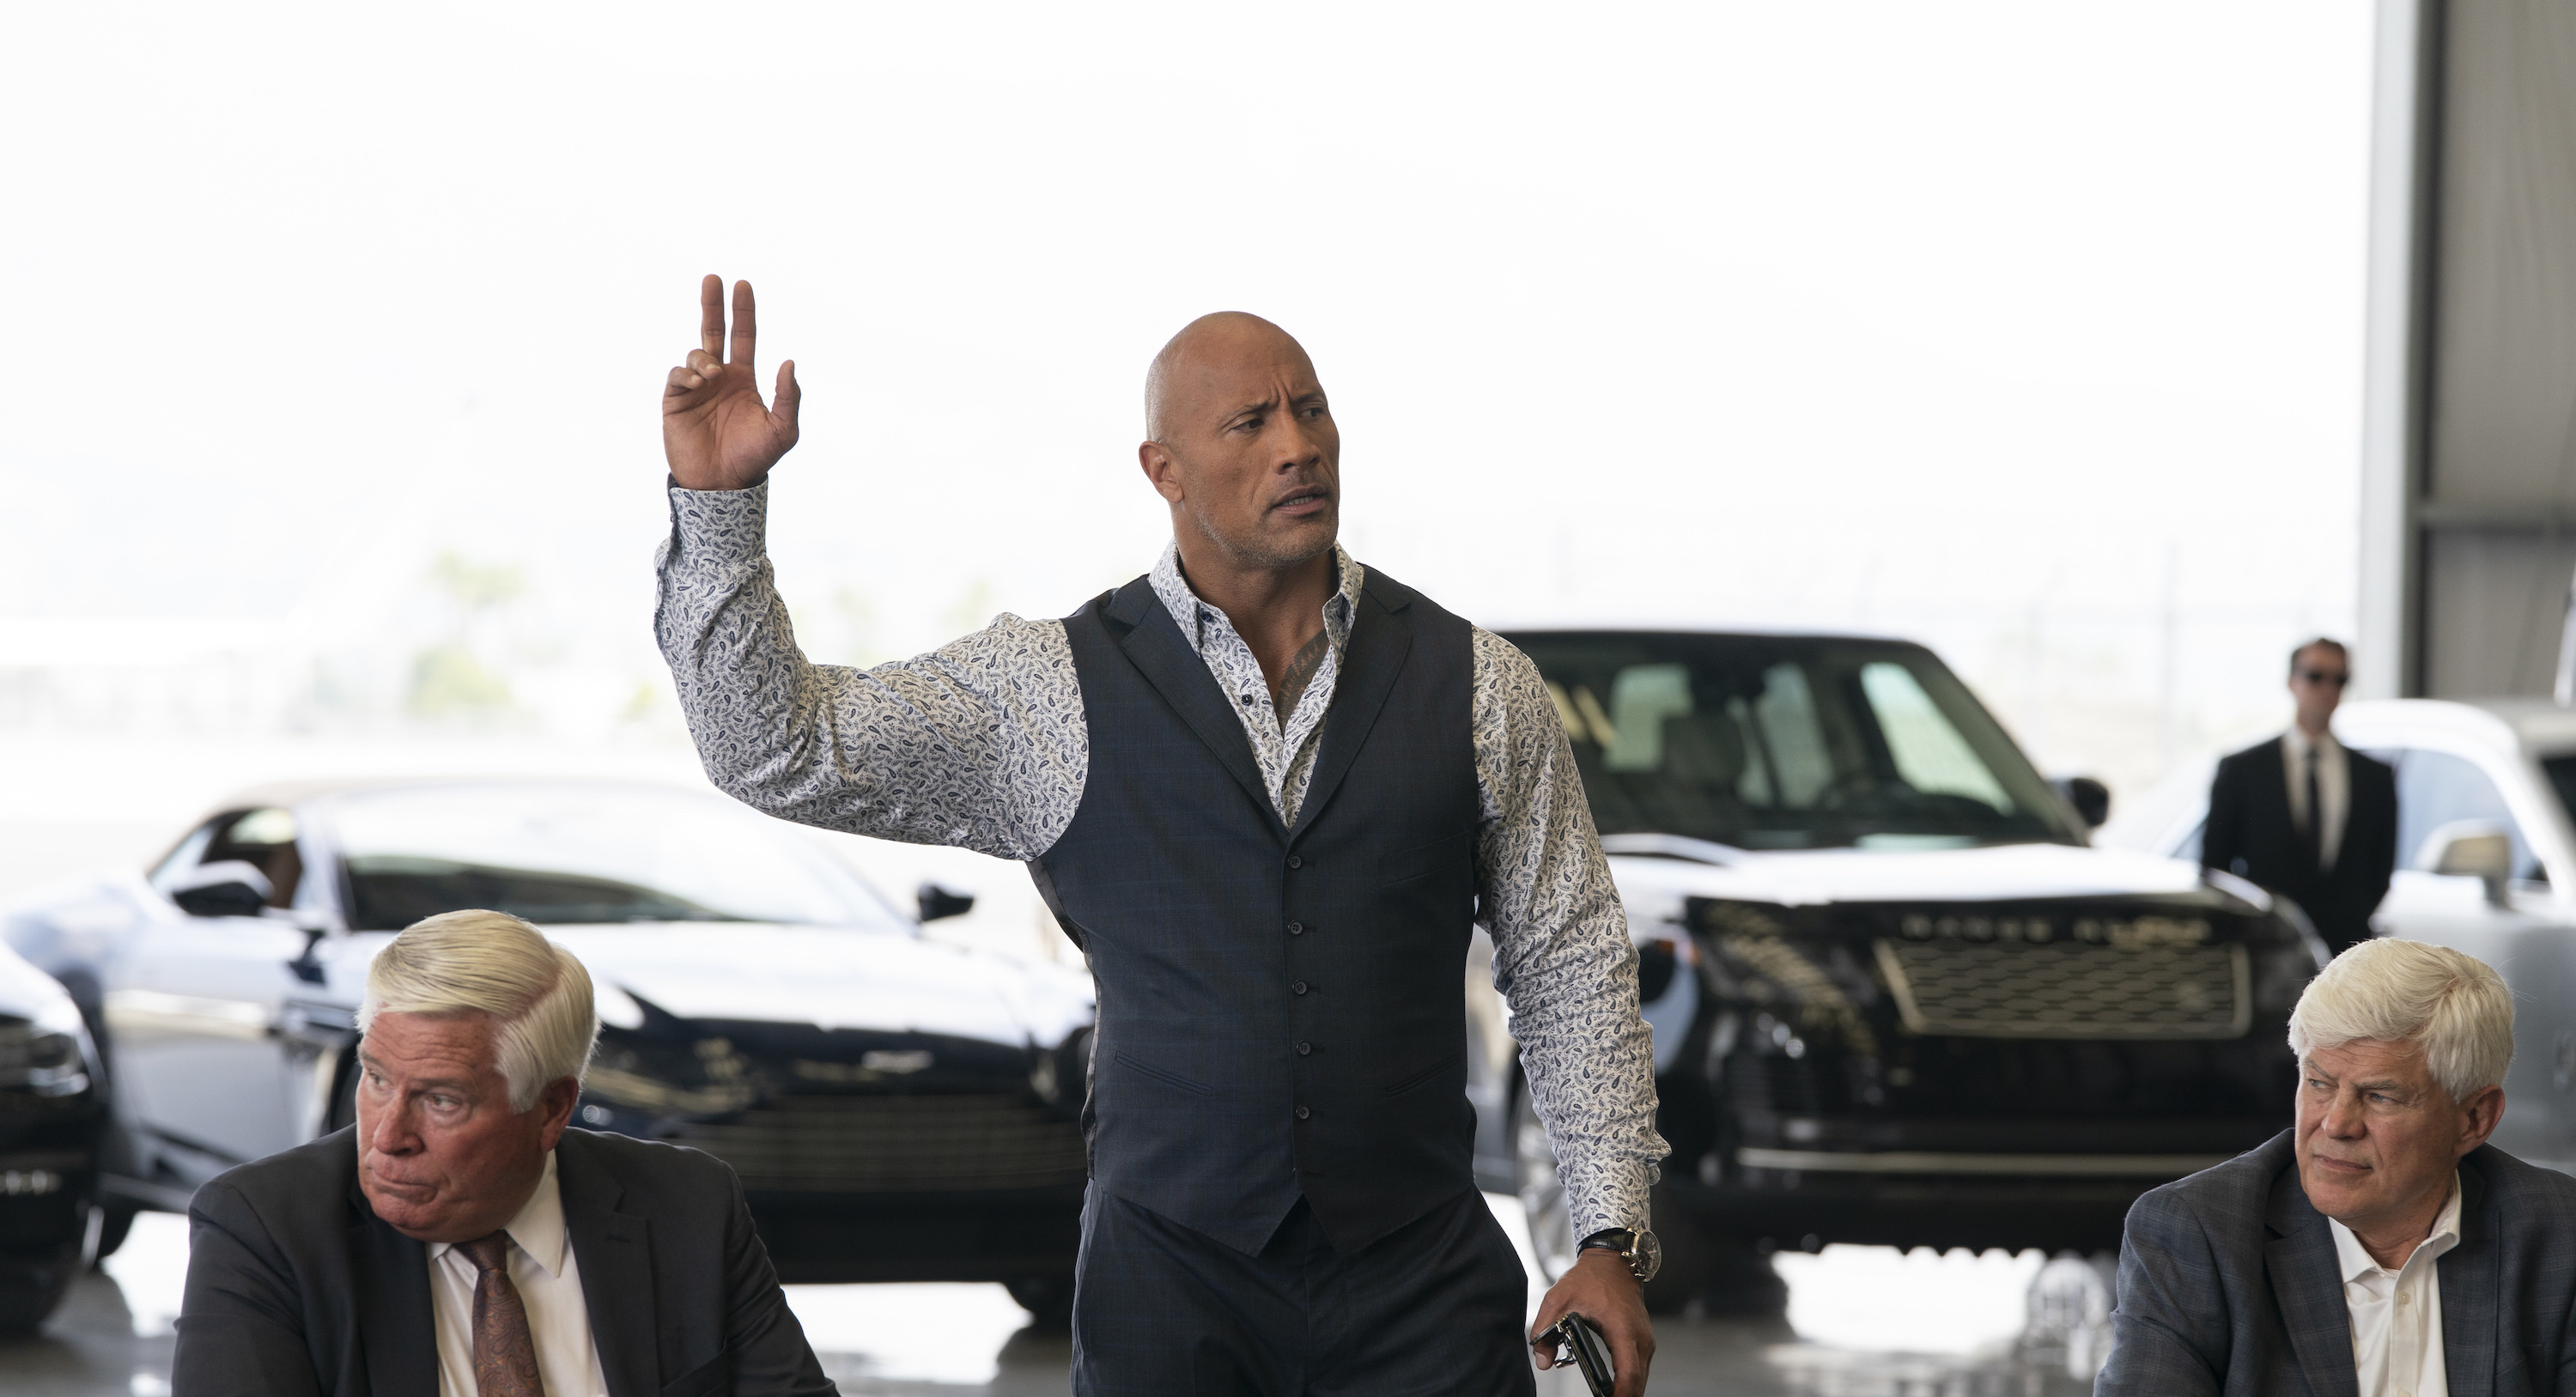 'Ballers' series finale synopsis/review: 'It was a magical run while it lasted'